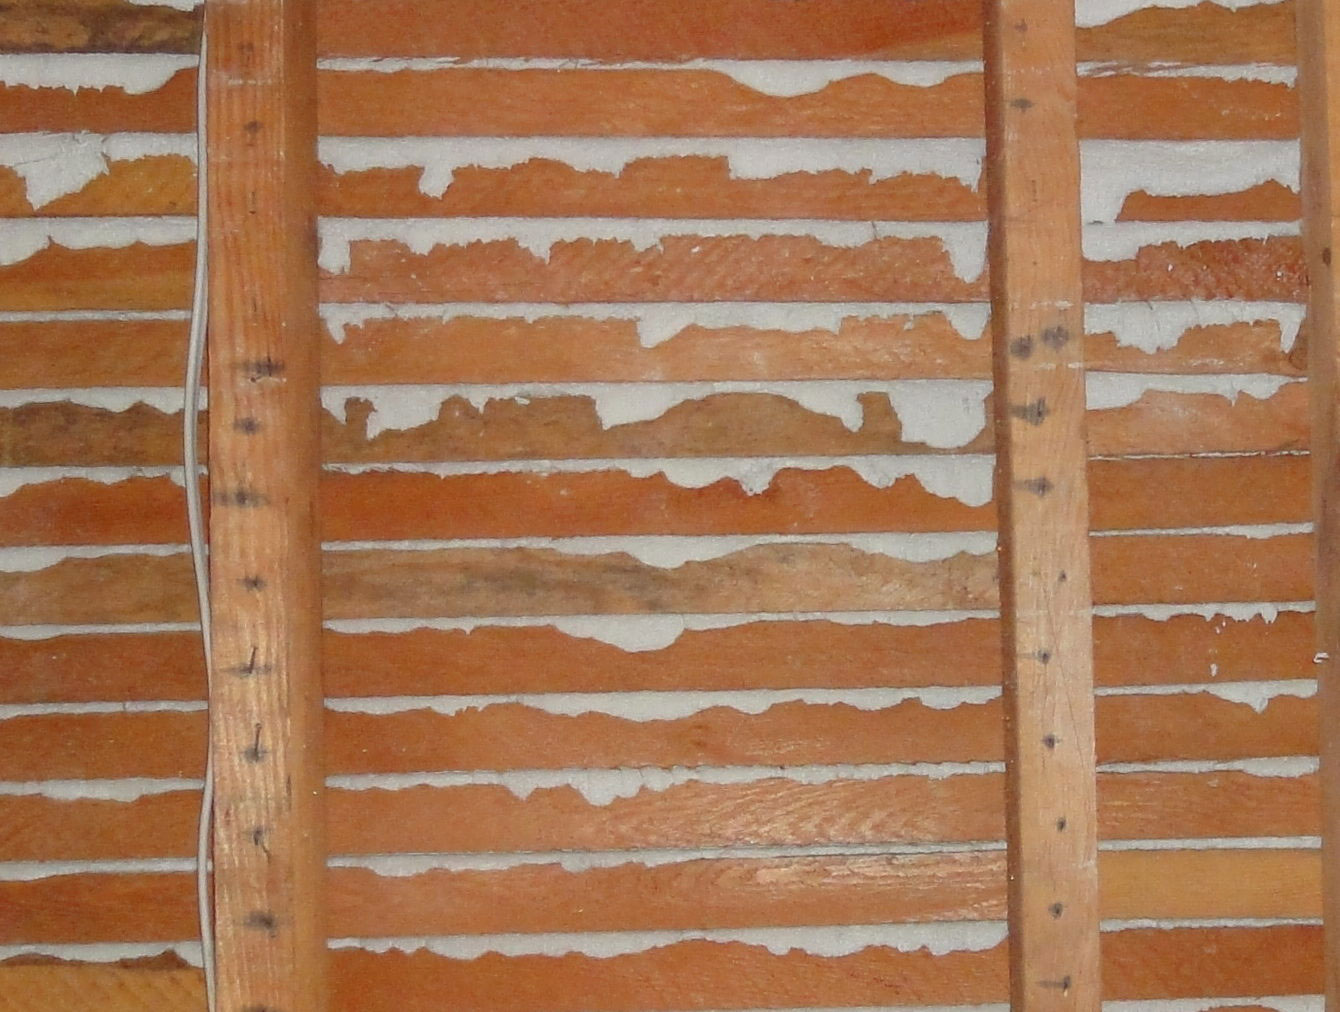 Slatted and plasterboard drywall alternatives that you should consider